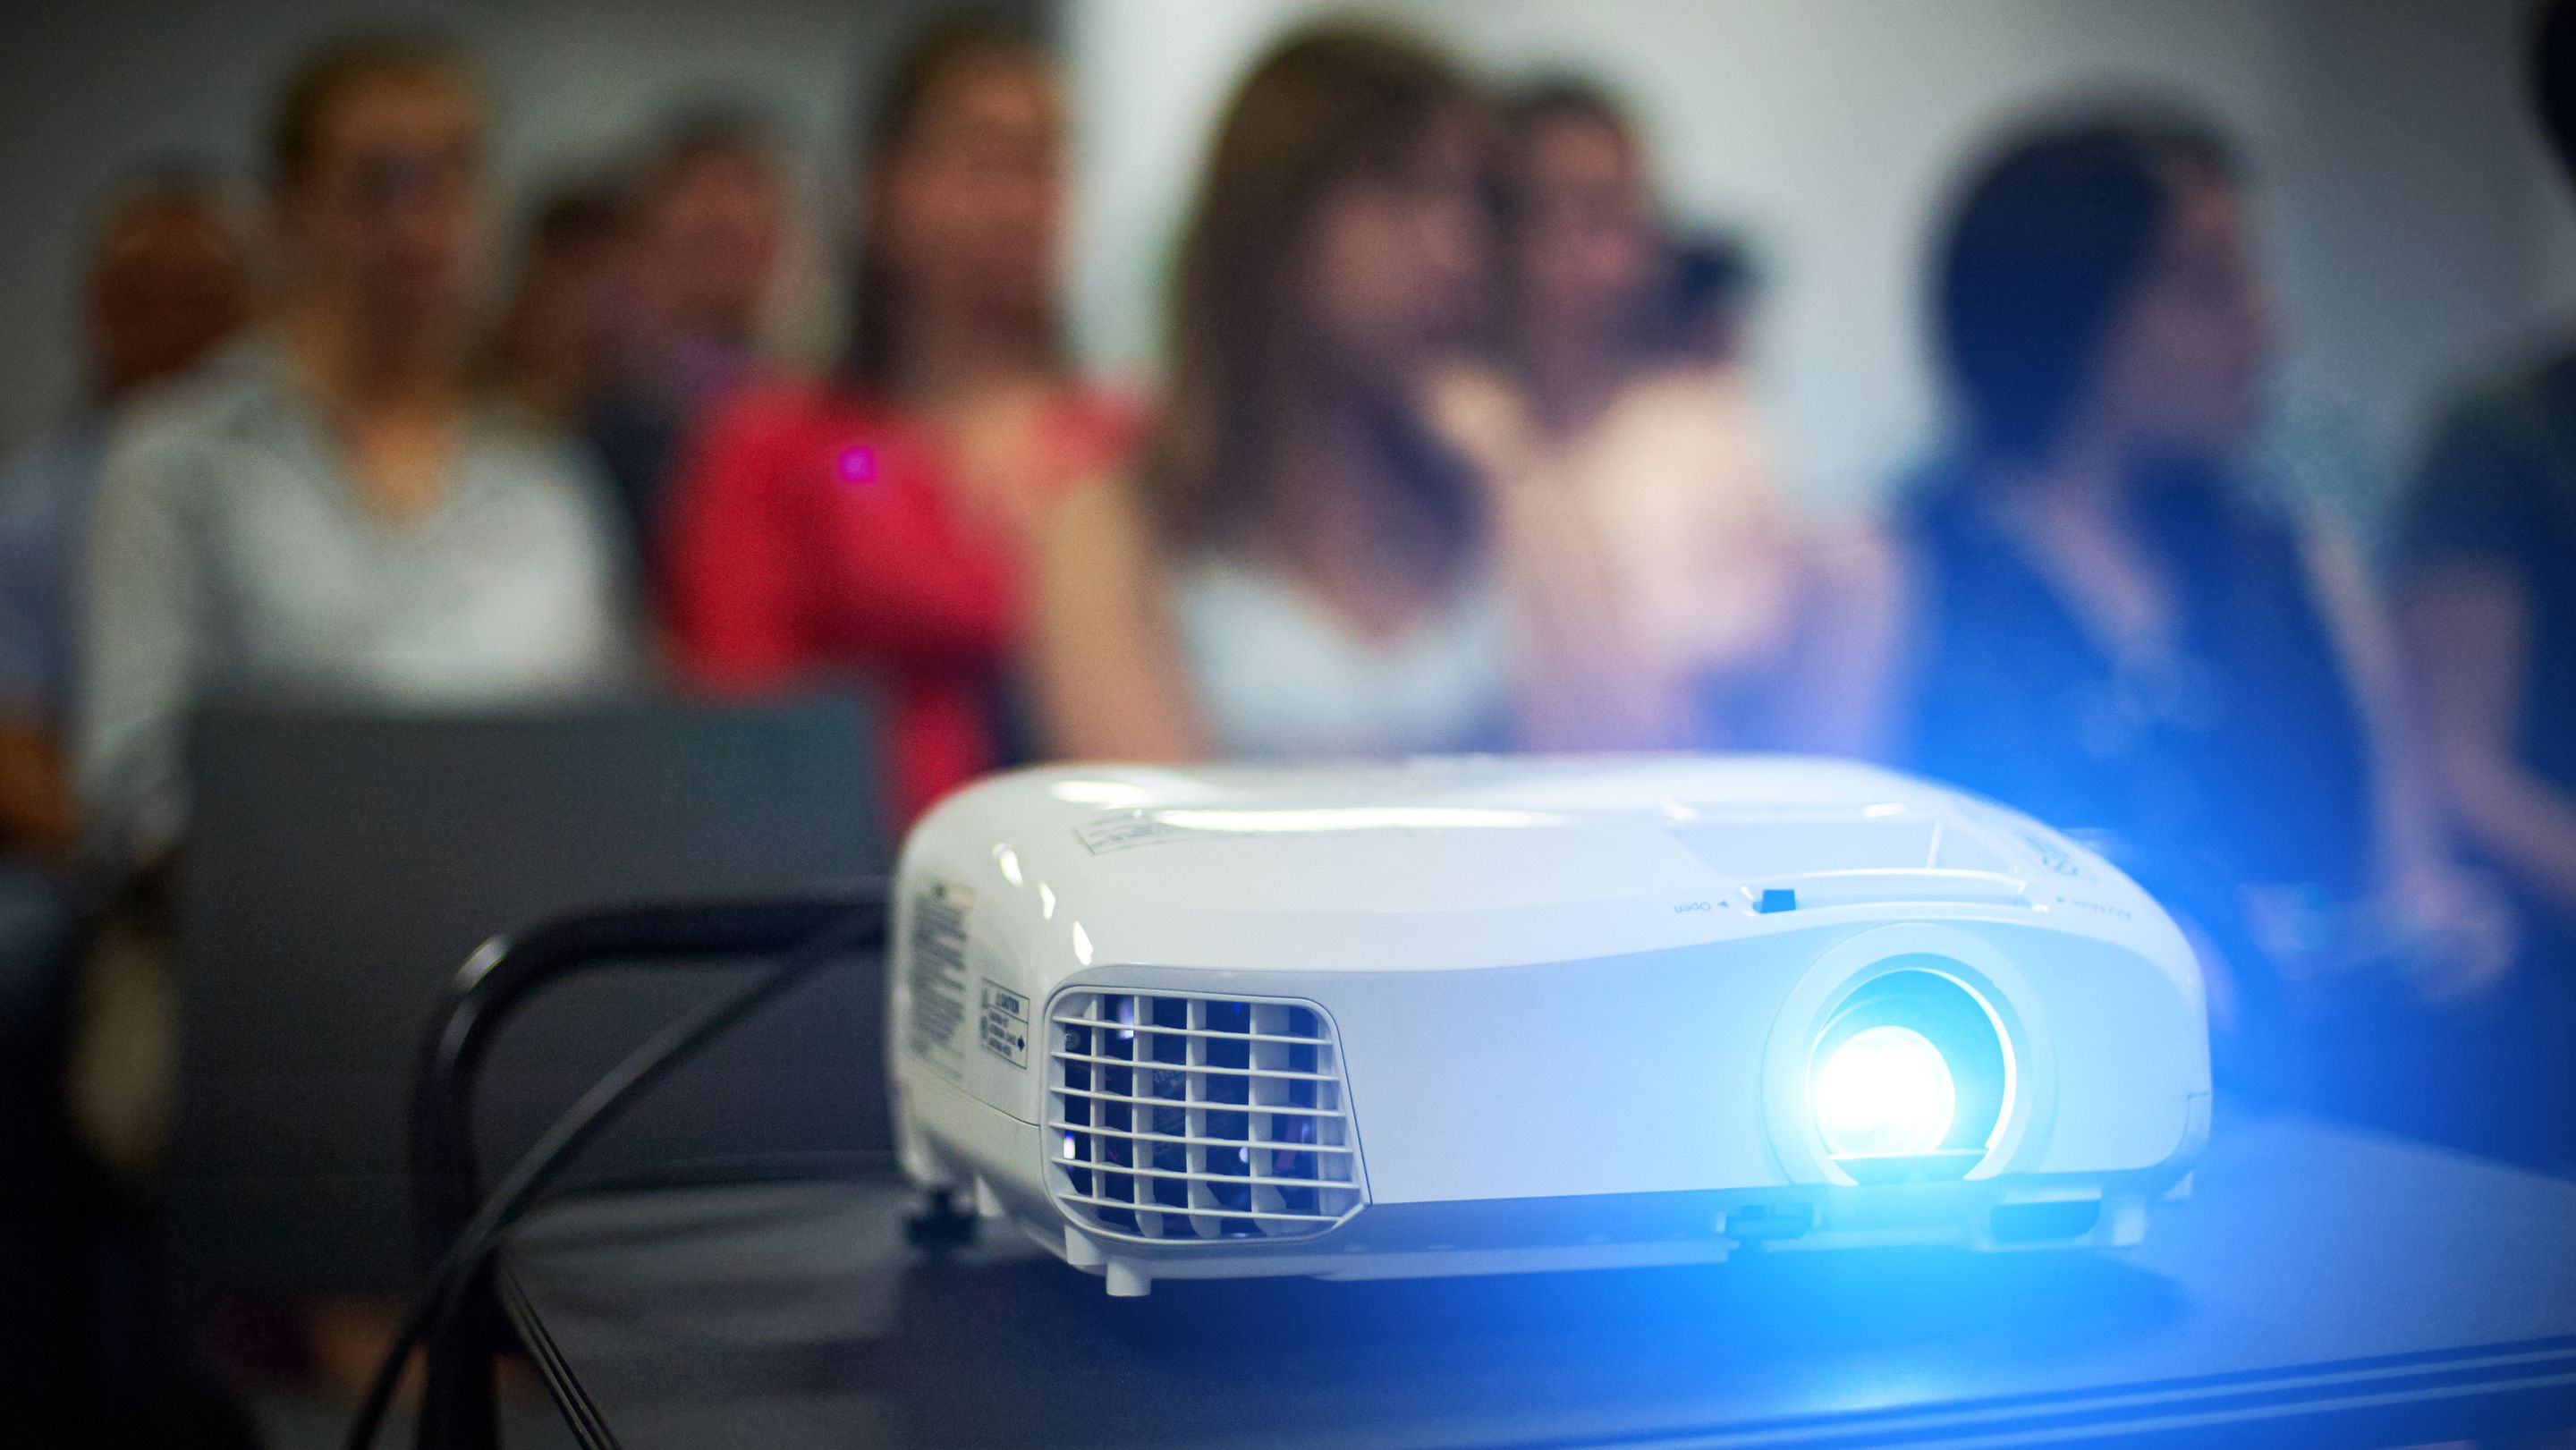 A video projector sitting on a cart, displaying something in front of a group of students